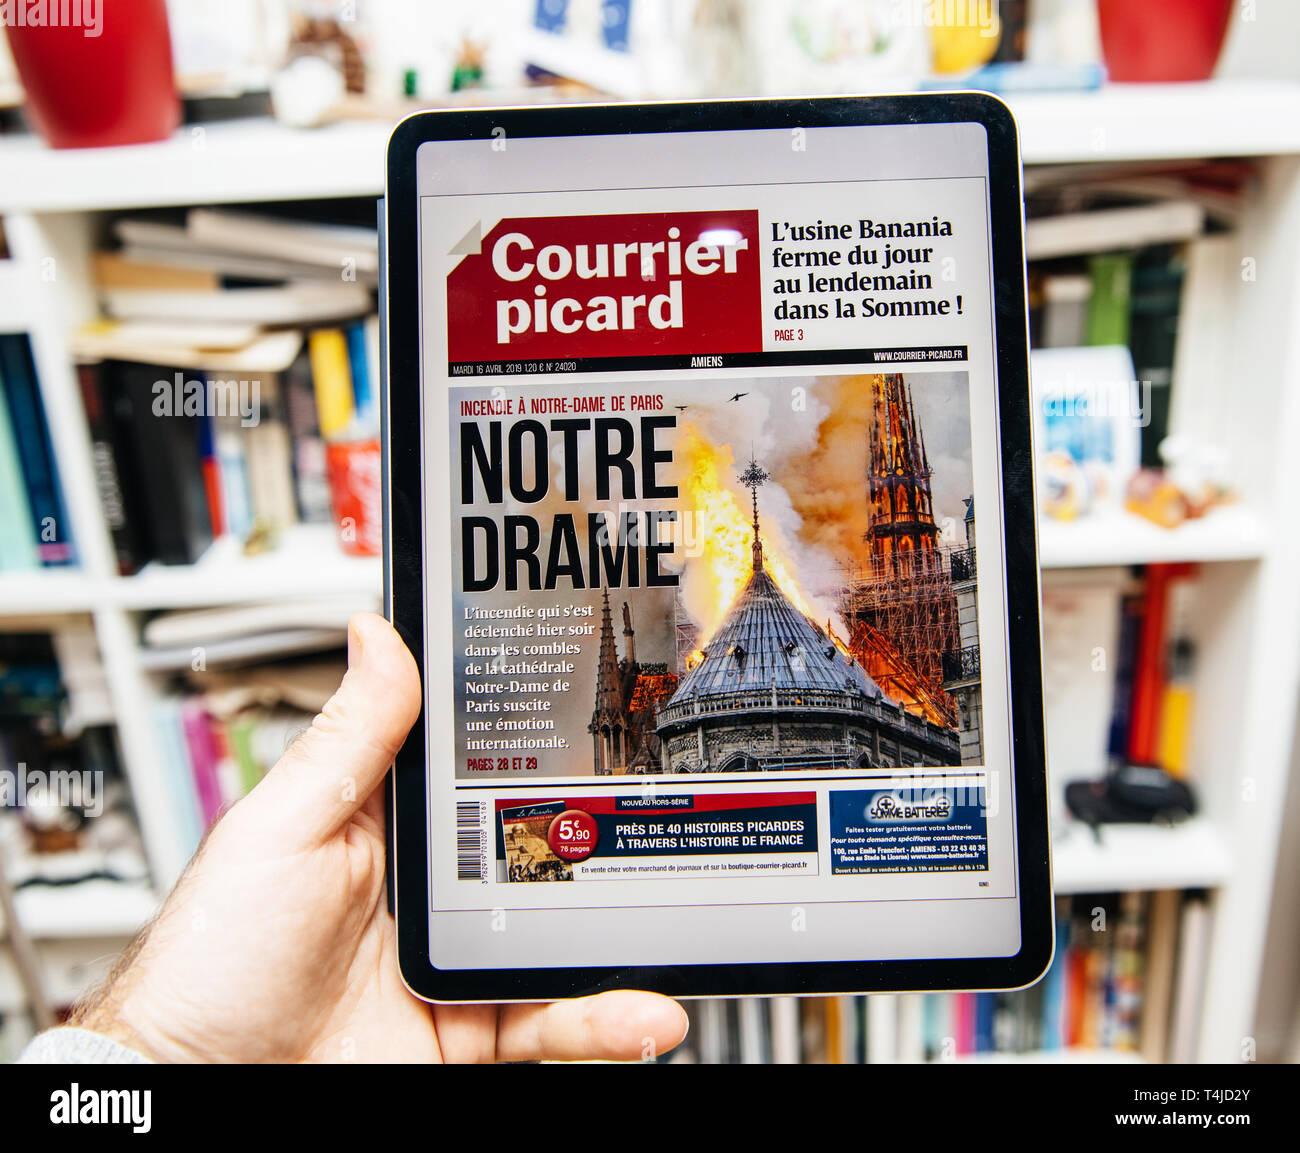 Famous French Screen Stock Photos & Famous French Screen